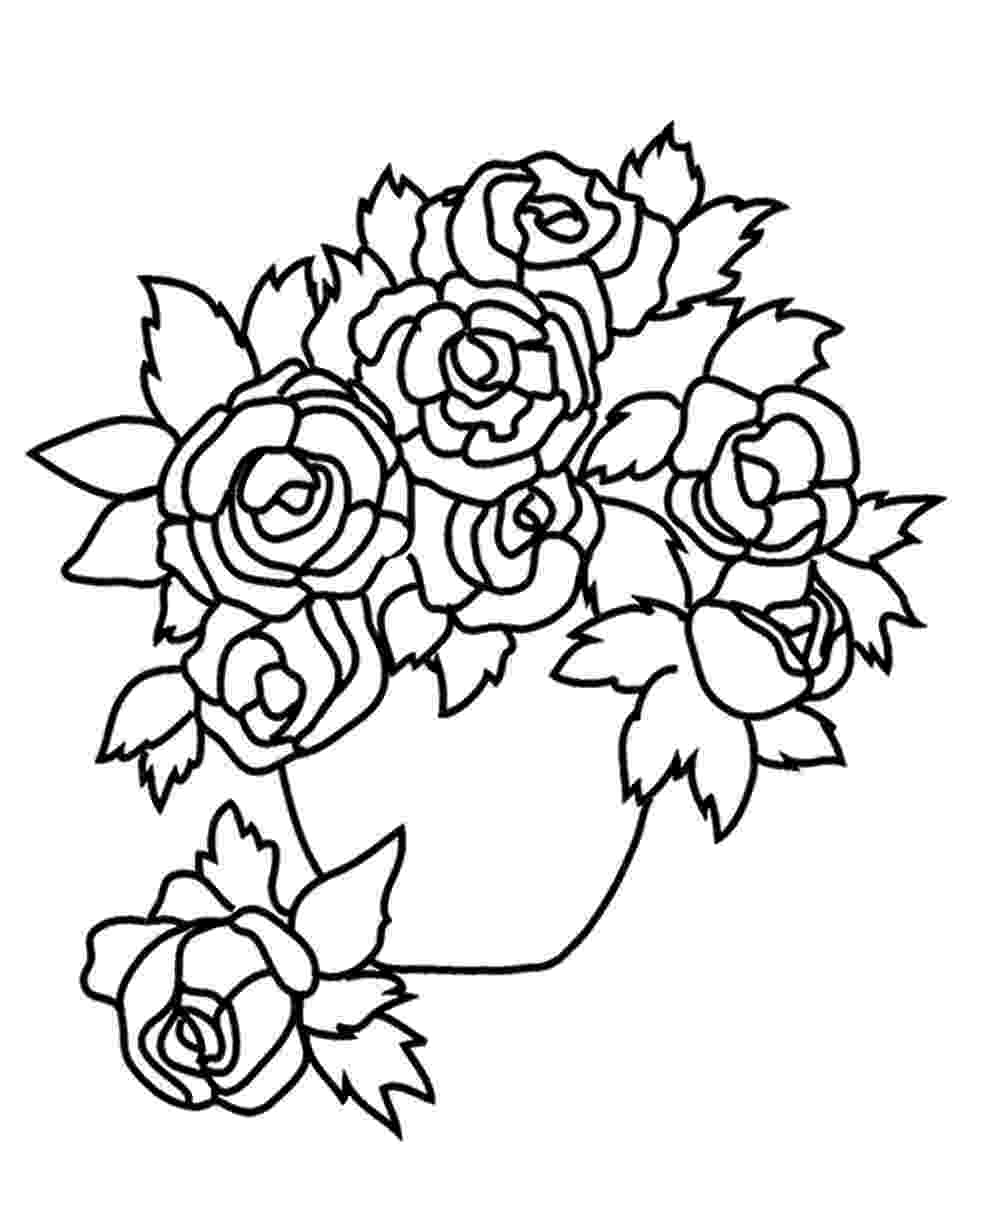 rose flower coloring page rose flower coloring pages getcoloringpagescom rose page coloring flower